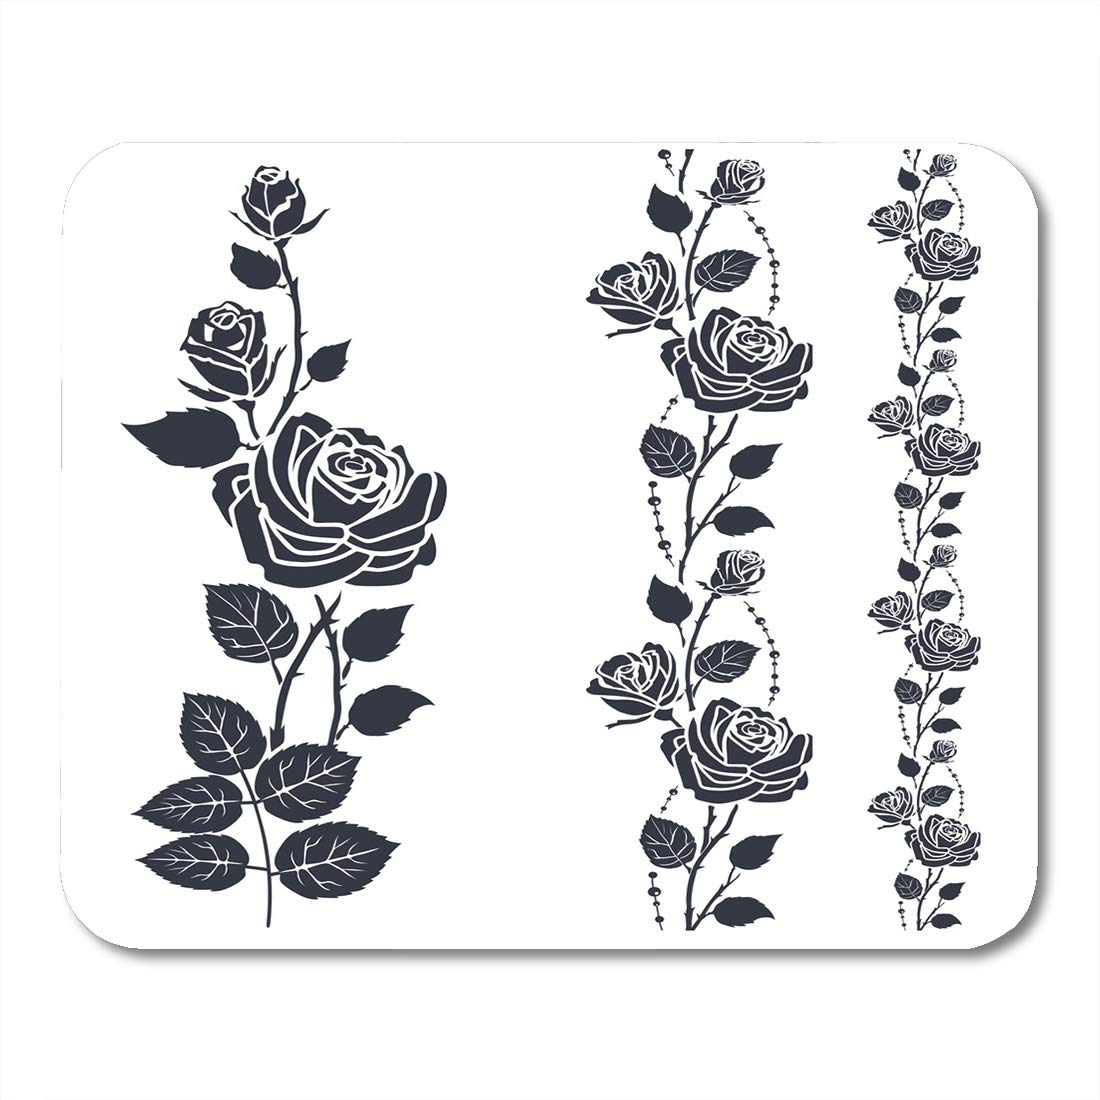 Amazoncom Nakamela Mouse Pads Drawing Black Flower Rose Tattoo